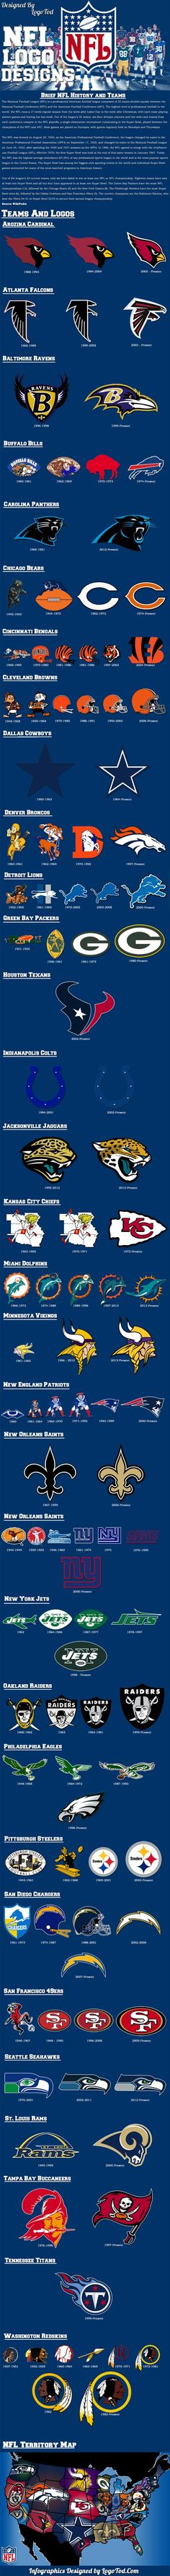 The History of NFL Logo Designs